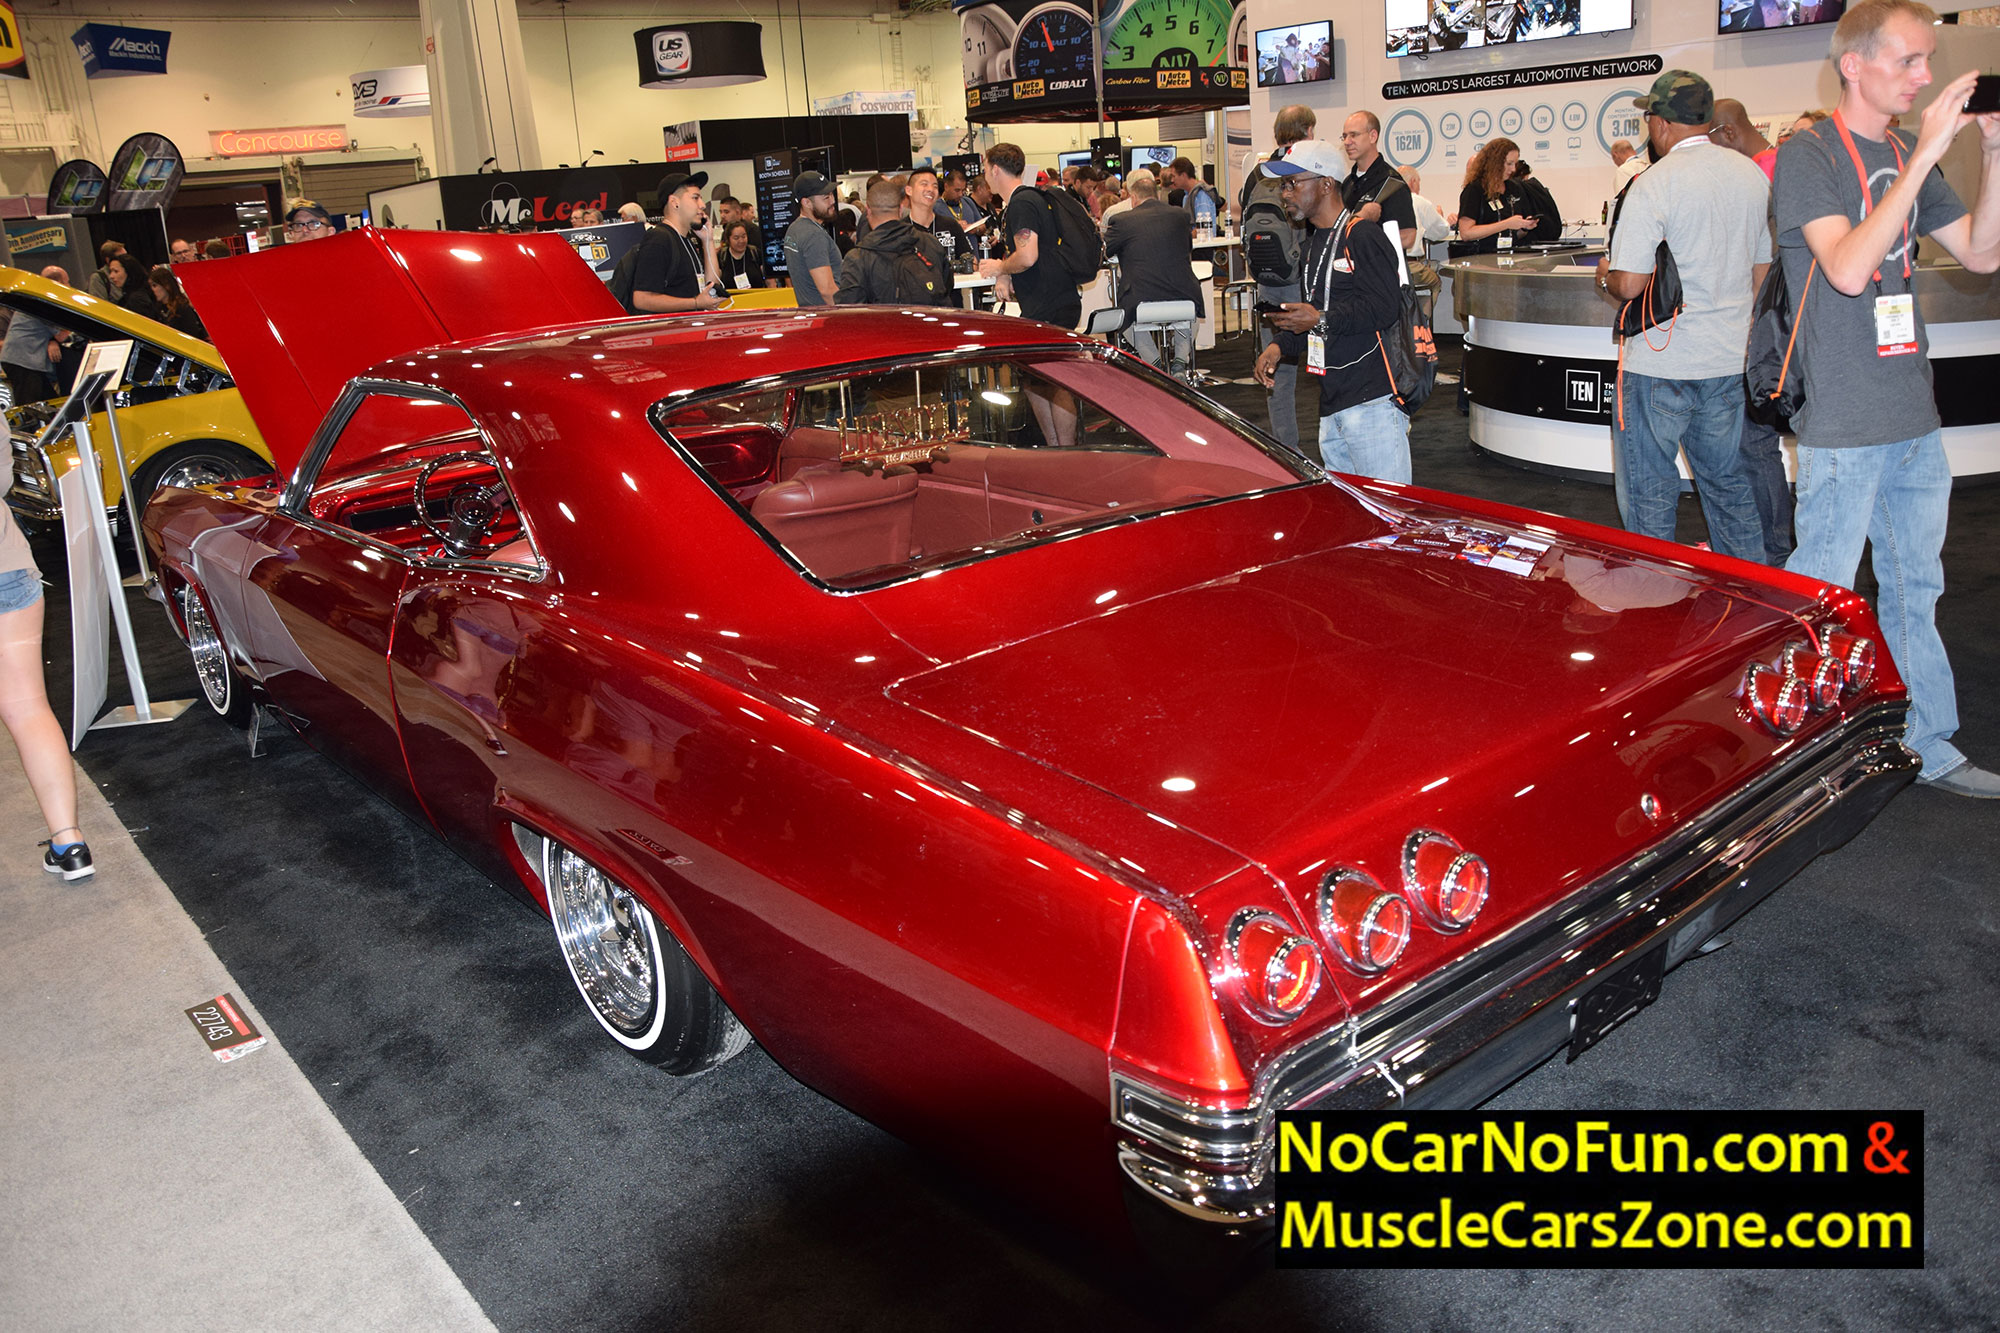 Red Chevrolet Chevelle 4 - Sema Show 2016 Vegas - Muscle Cars Zone!